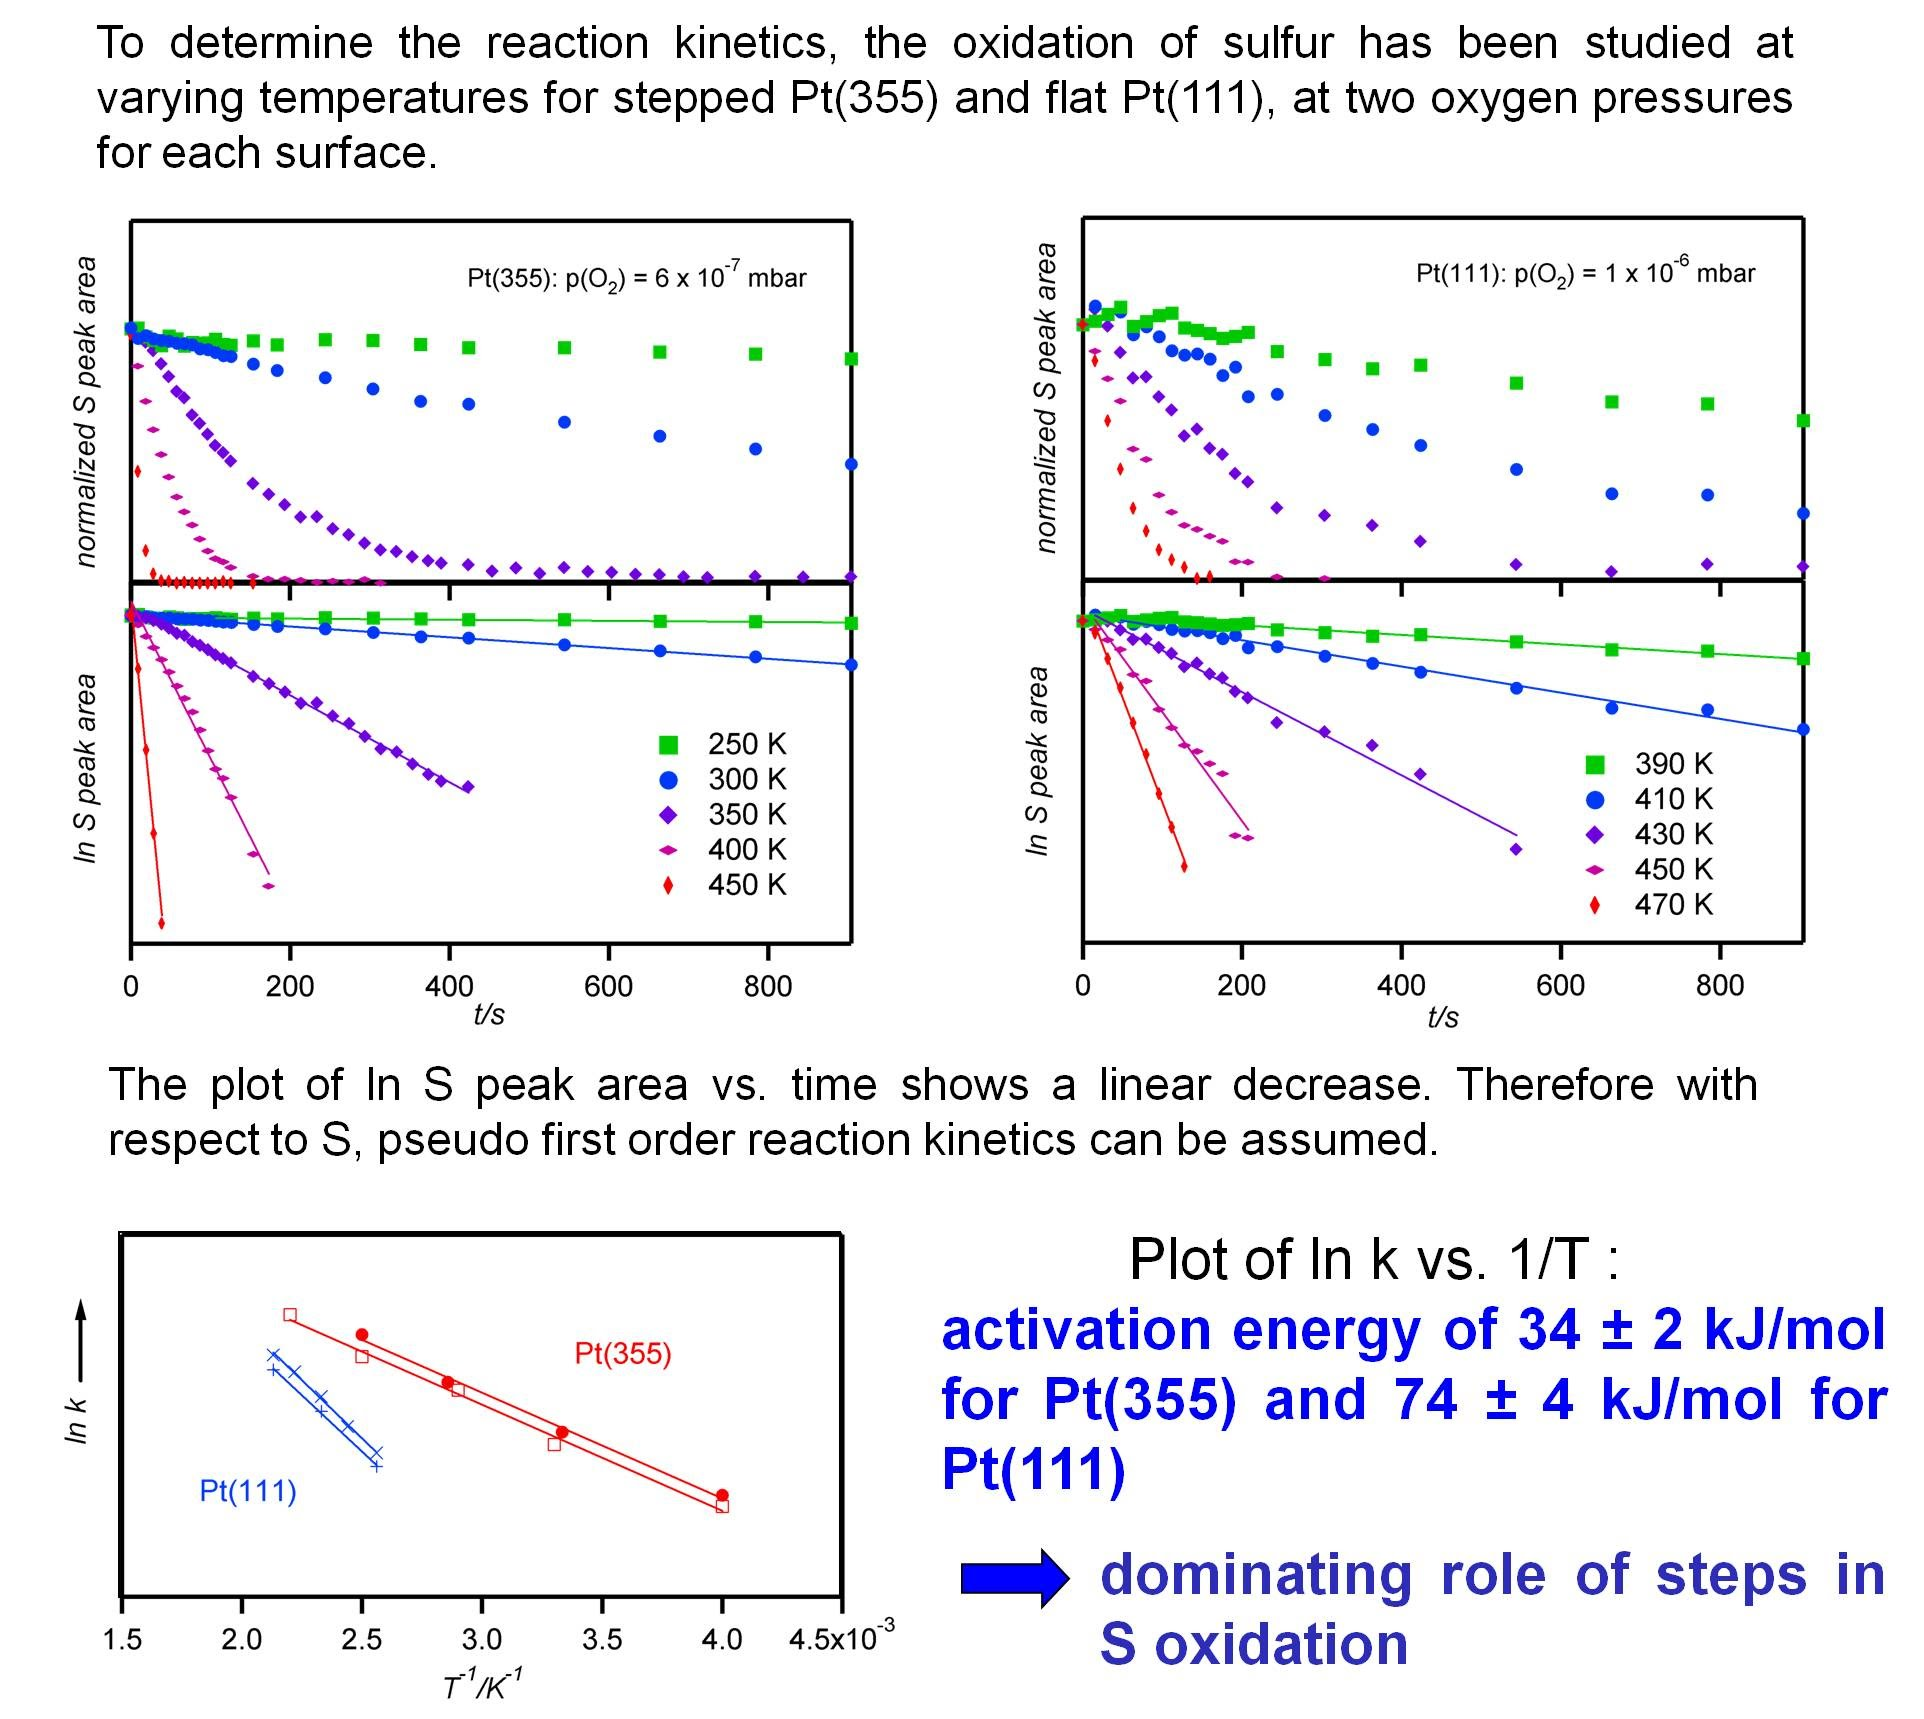 isothermal experiments (Image: Papp)